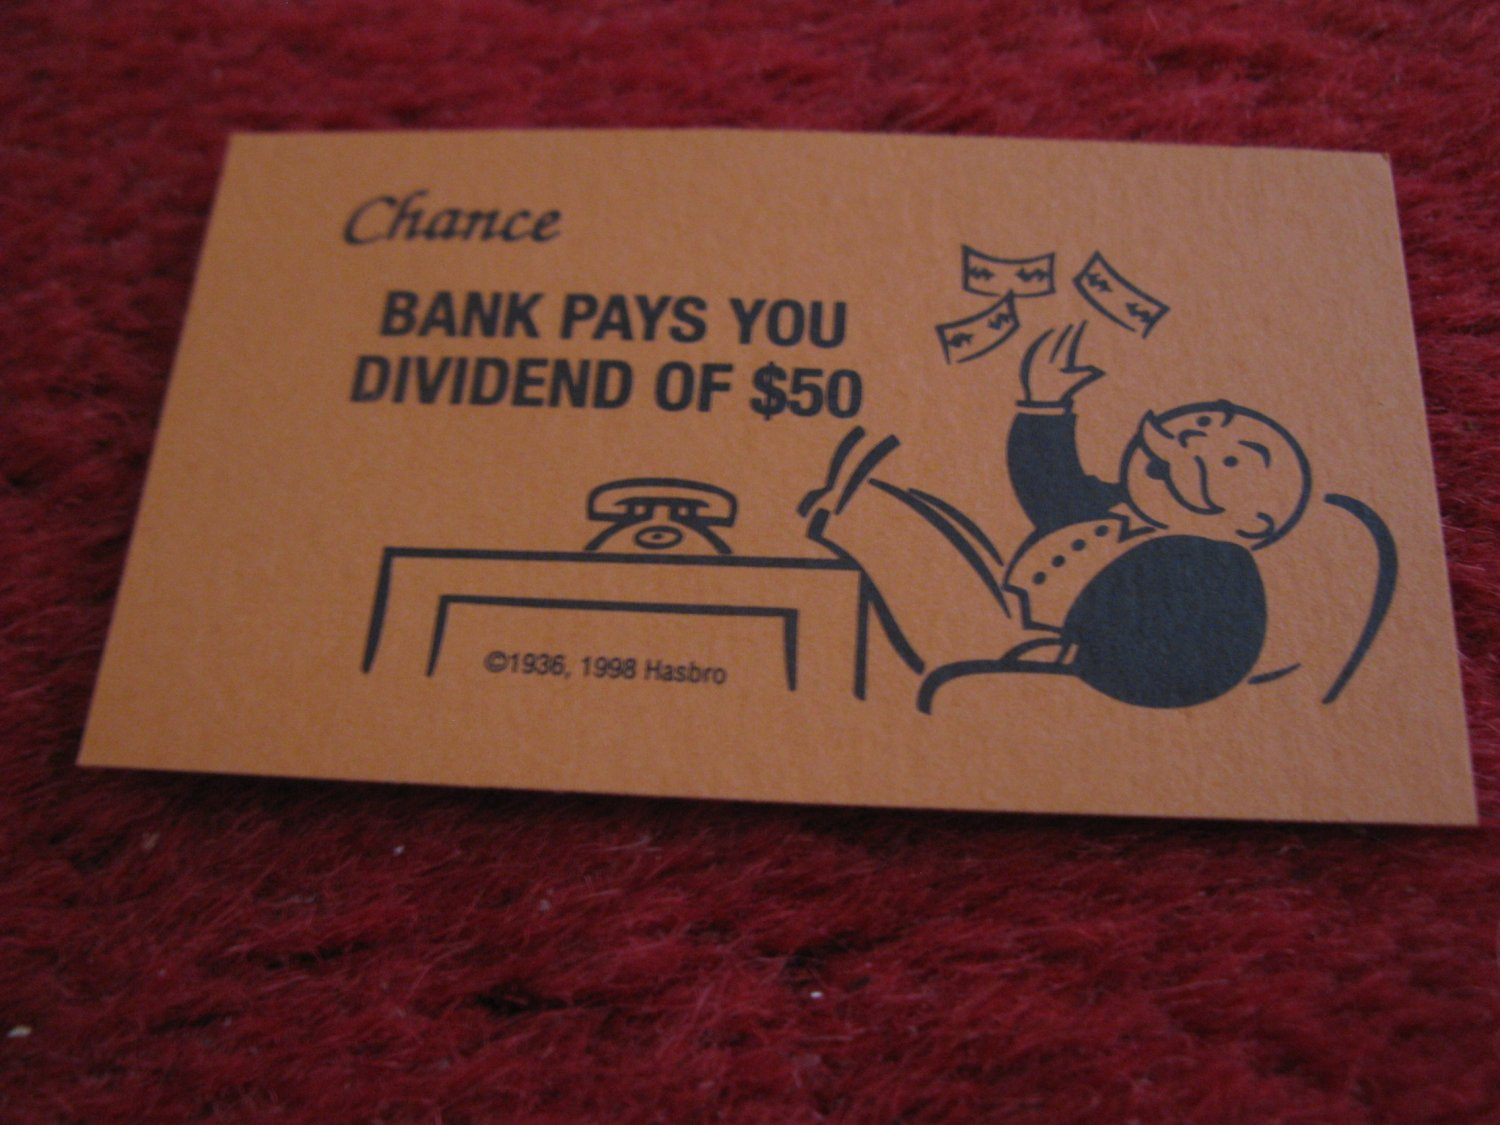 2004 Monopoly Board Game Piece: Bank Pays Dividend Chance Card